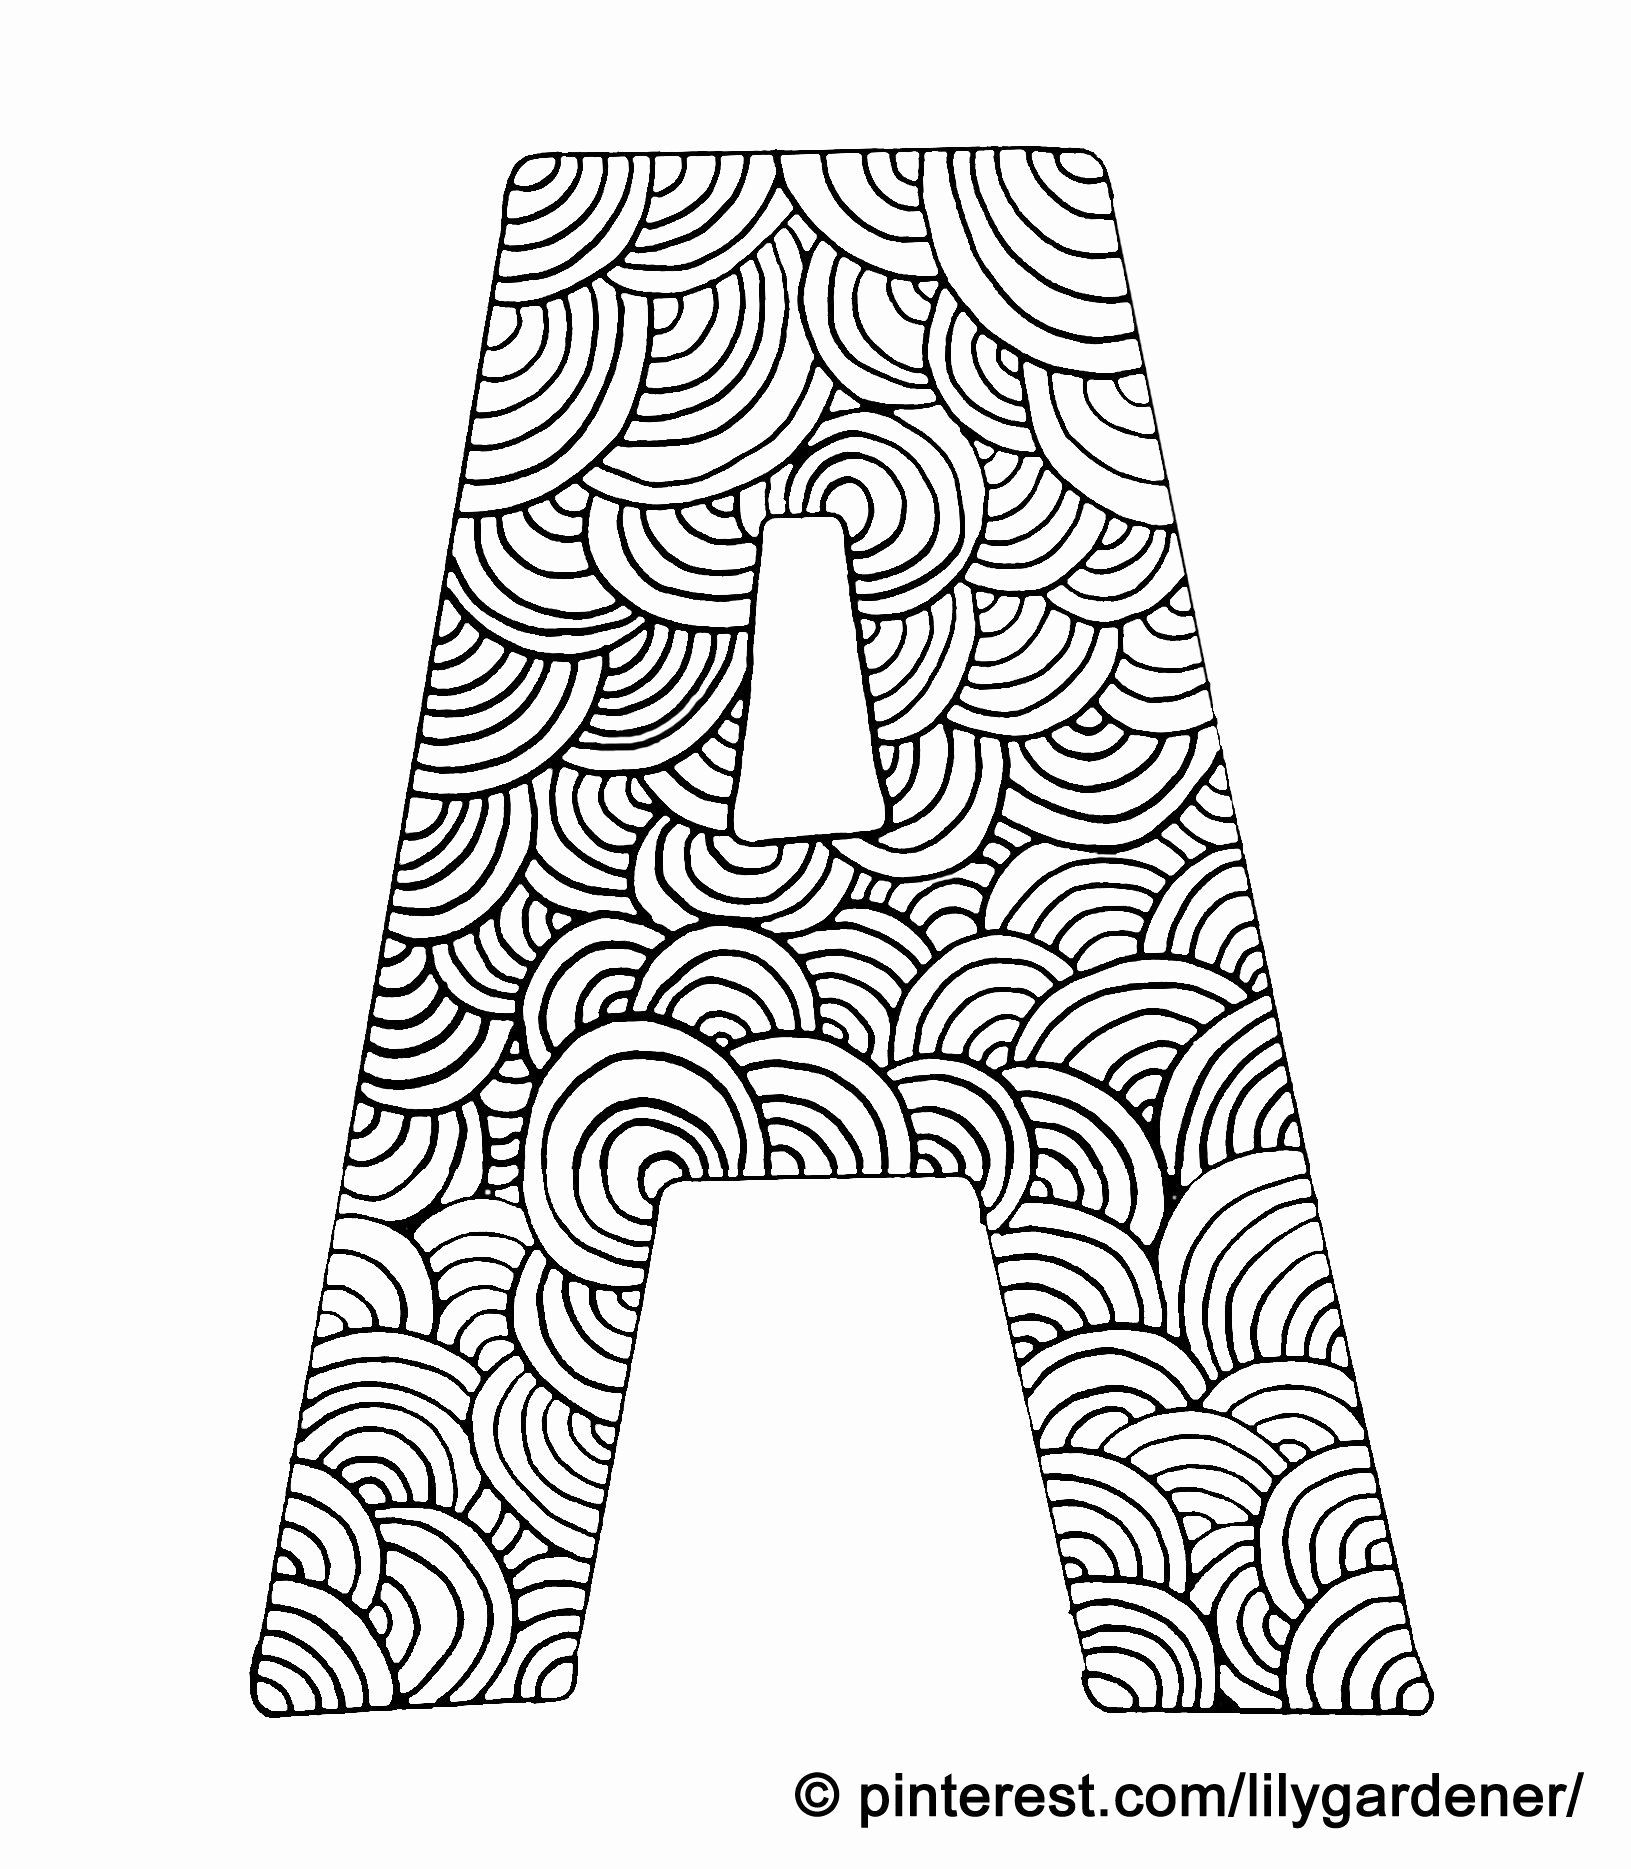 Alphabet Y Coloring Beautiful Coloring Page Letter A With Pattern Of Circles Coloring For Alphabet Coloring Pages Letter A Coloring Pages Turtle Coloring Pages